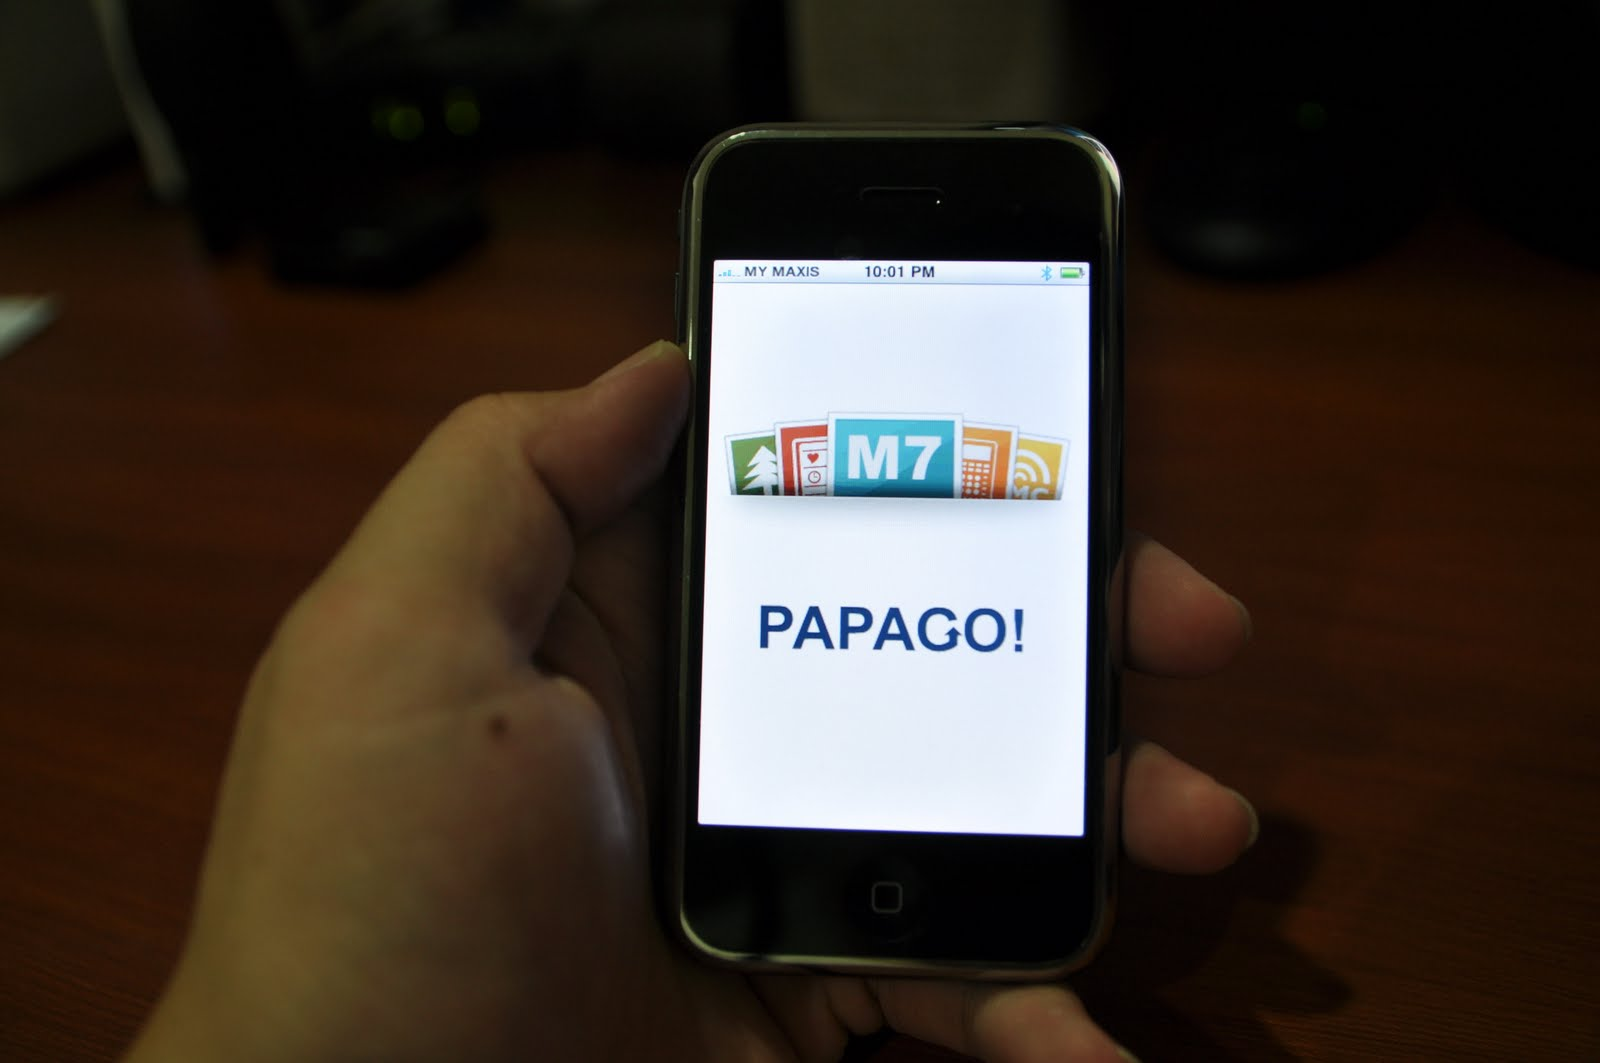 Papago map malaysia download android. Download ie9 x64